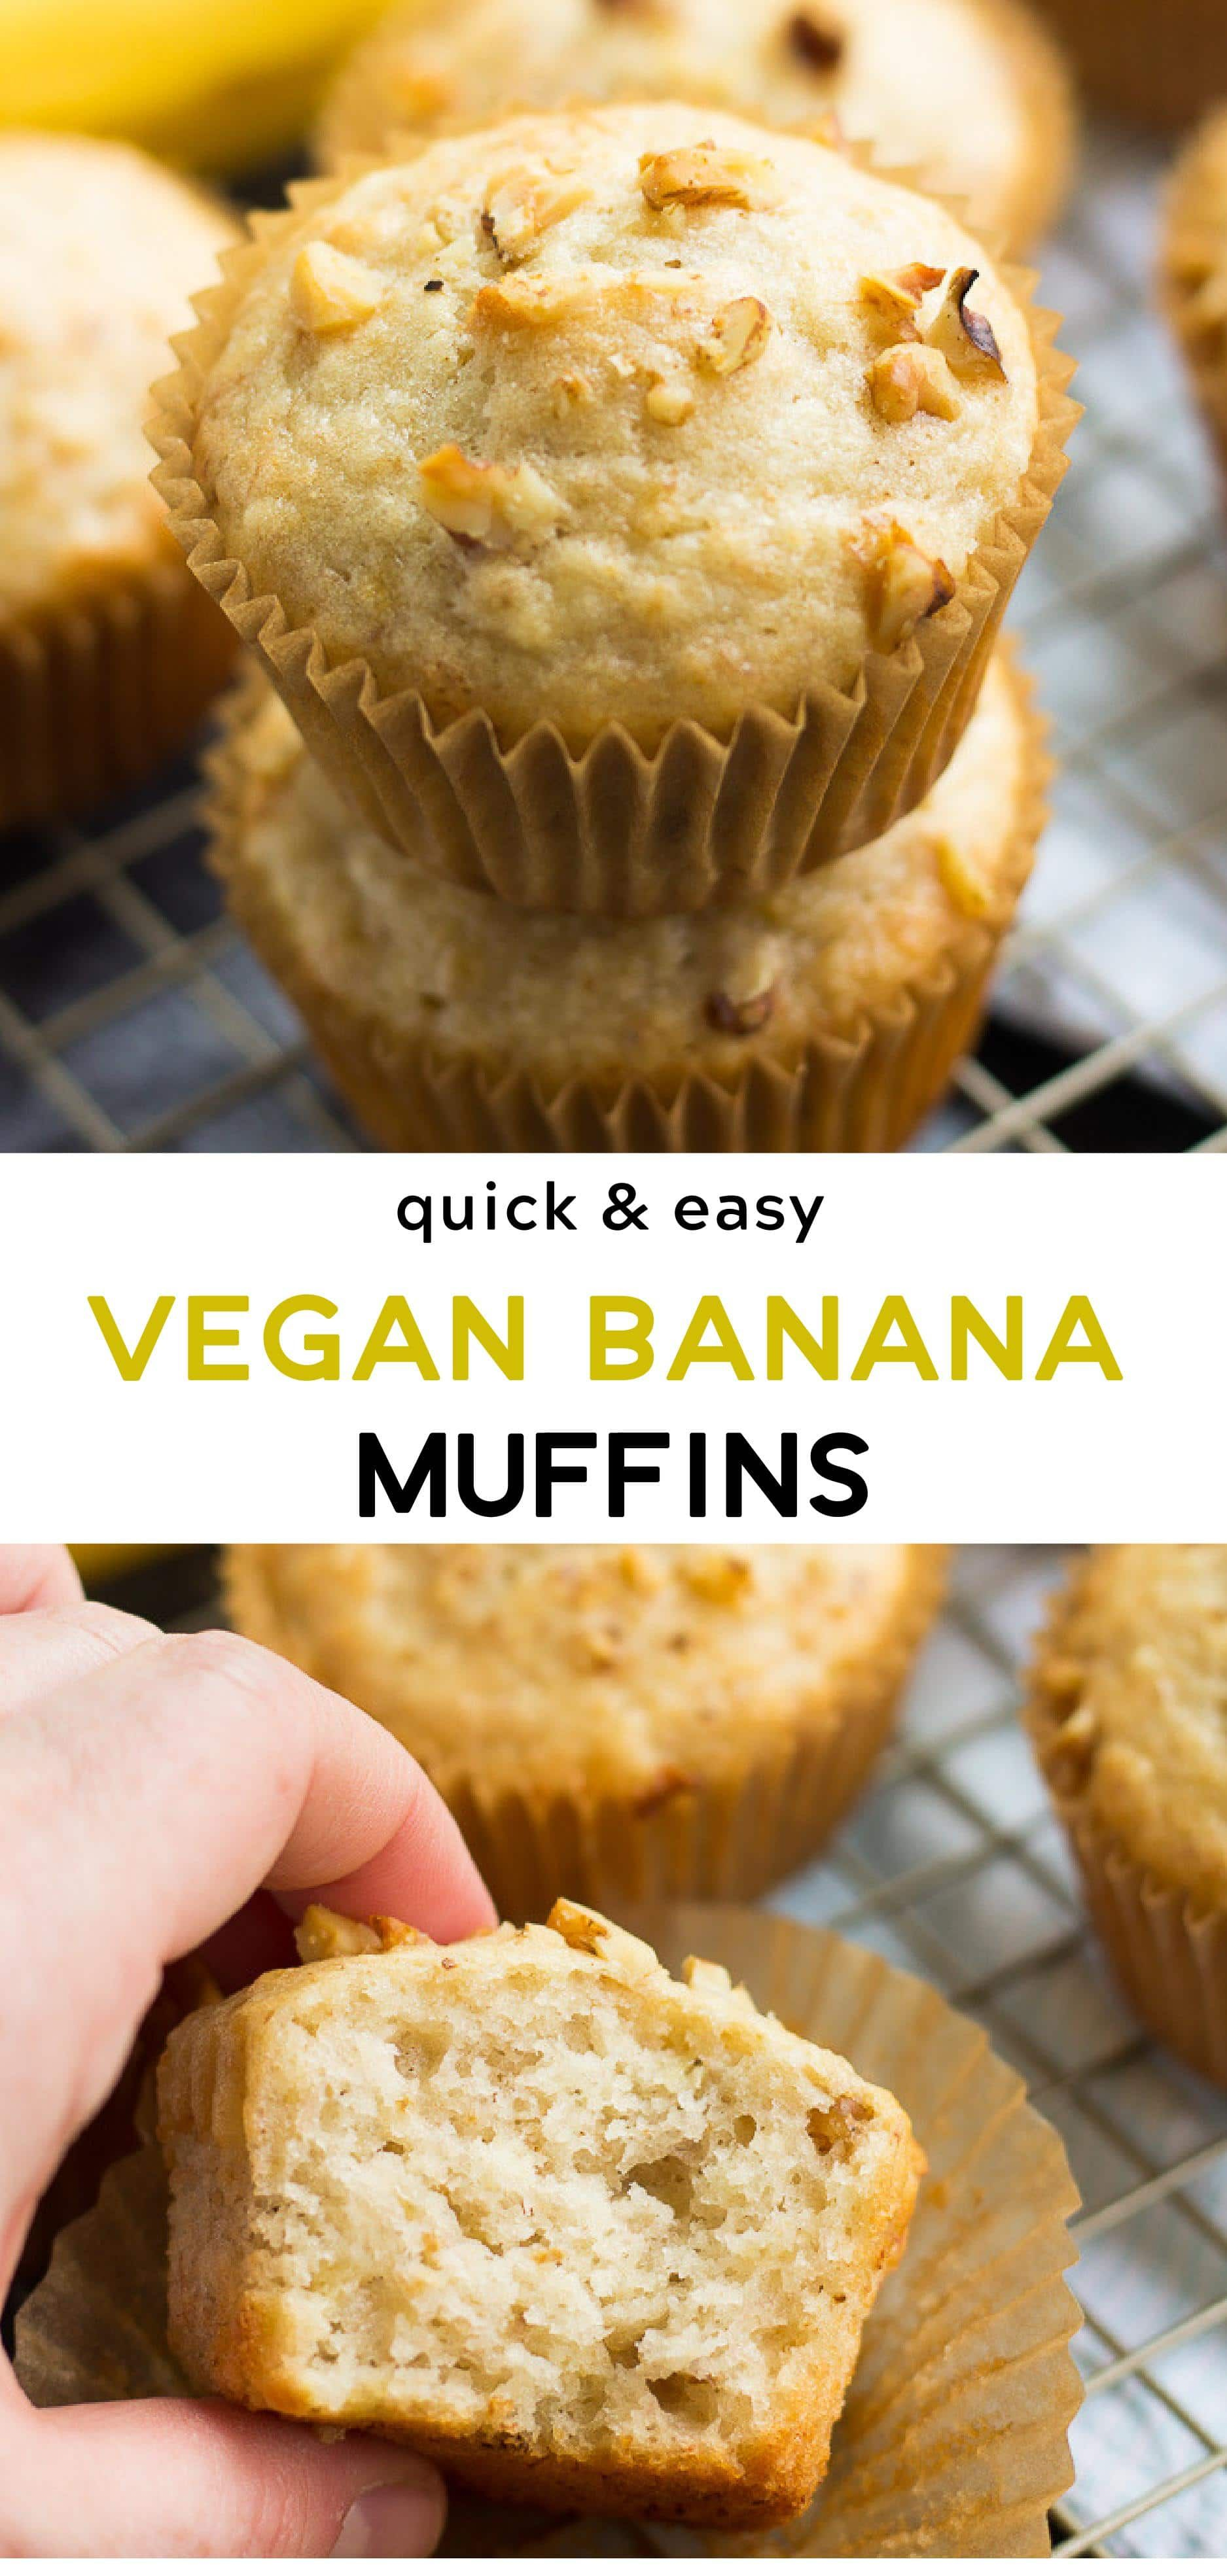 Quick & Easy Vegan Banana Muffins images